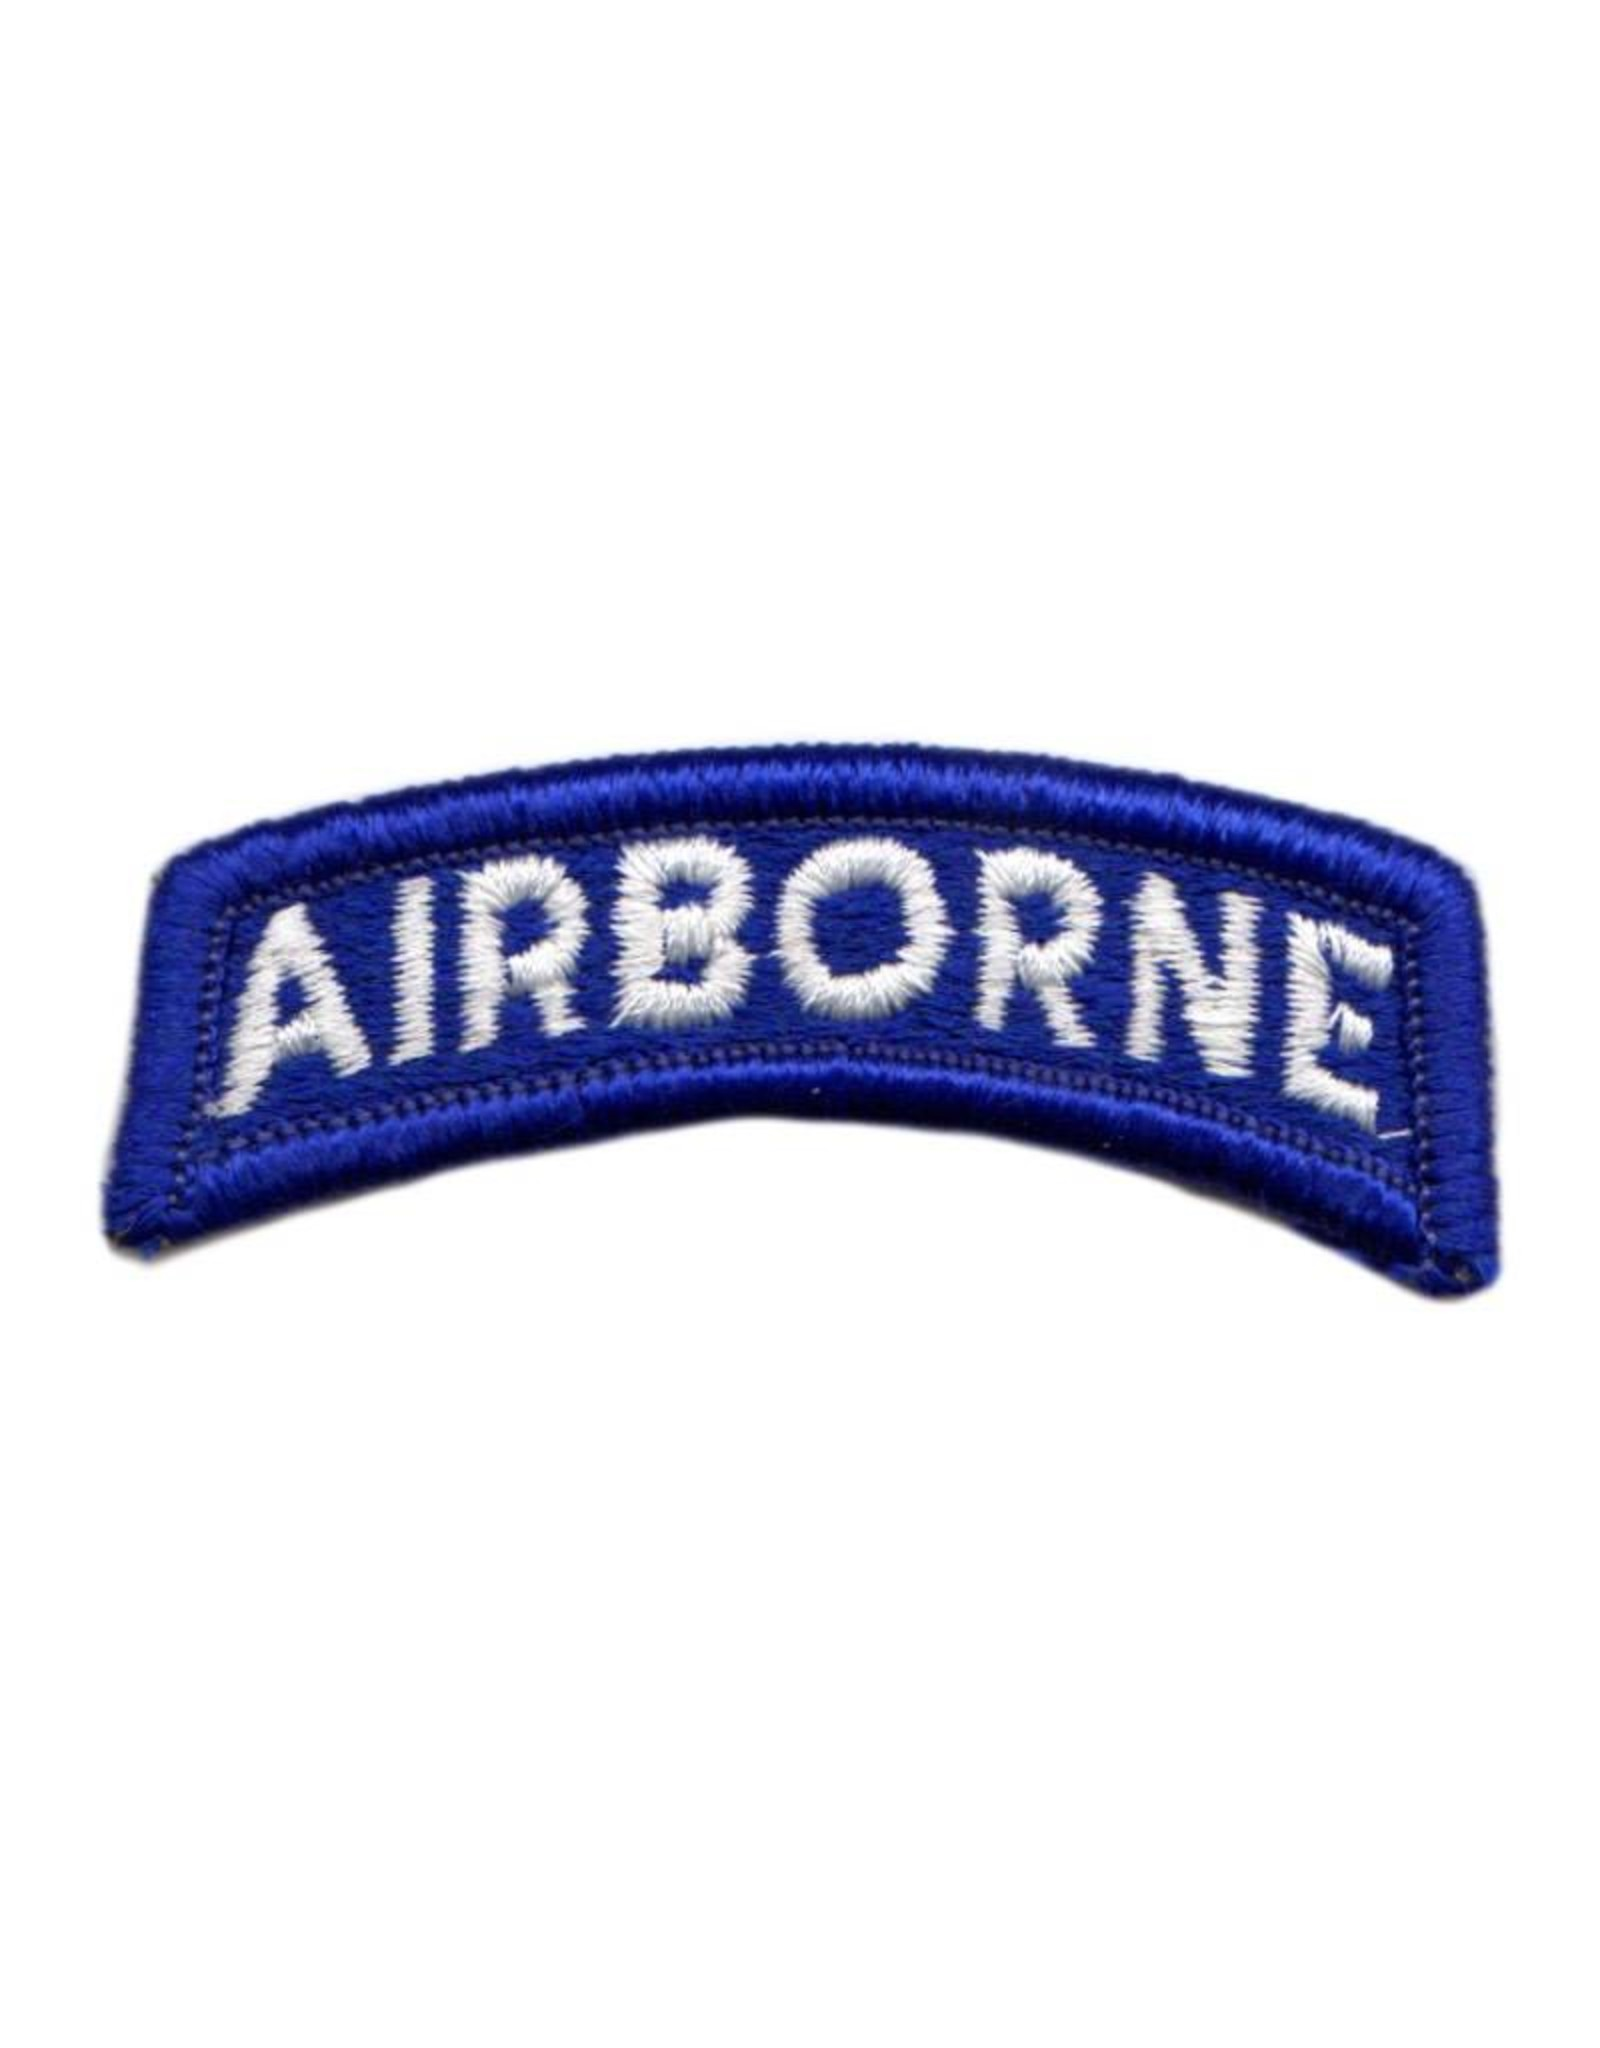 MidMil Embroidered White on Blue Army Airborne Tab Patch